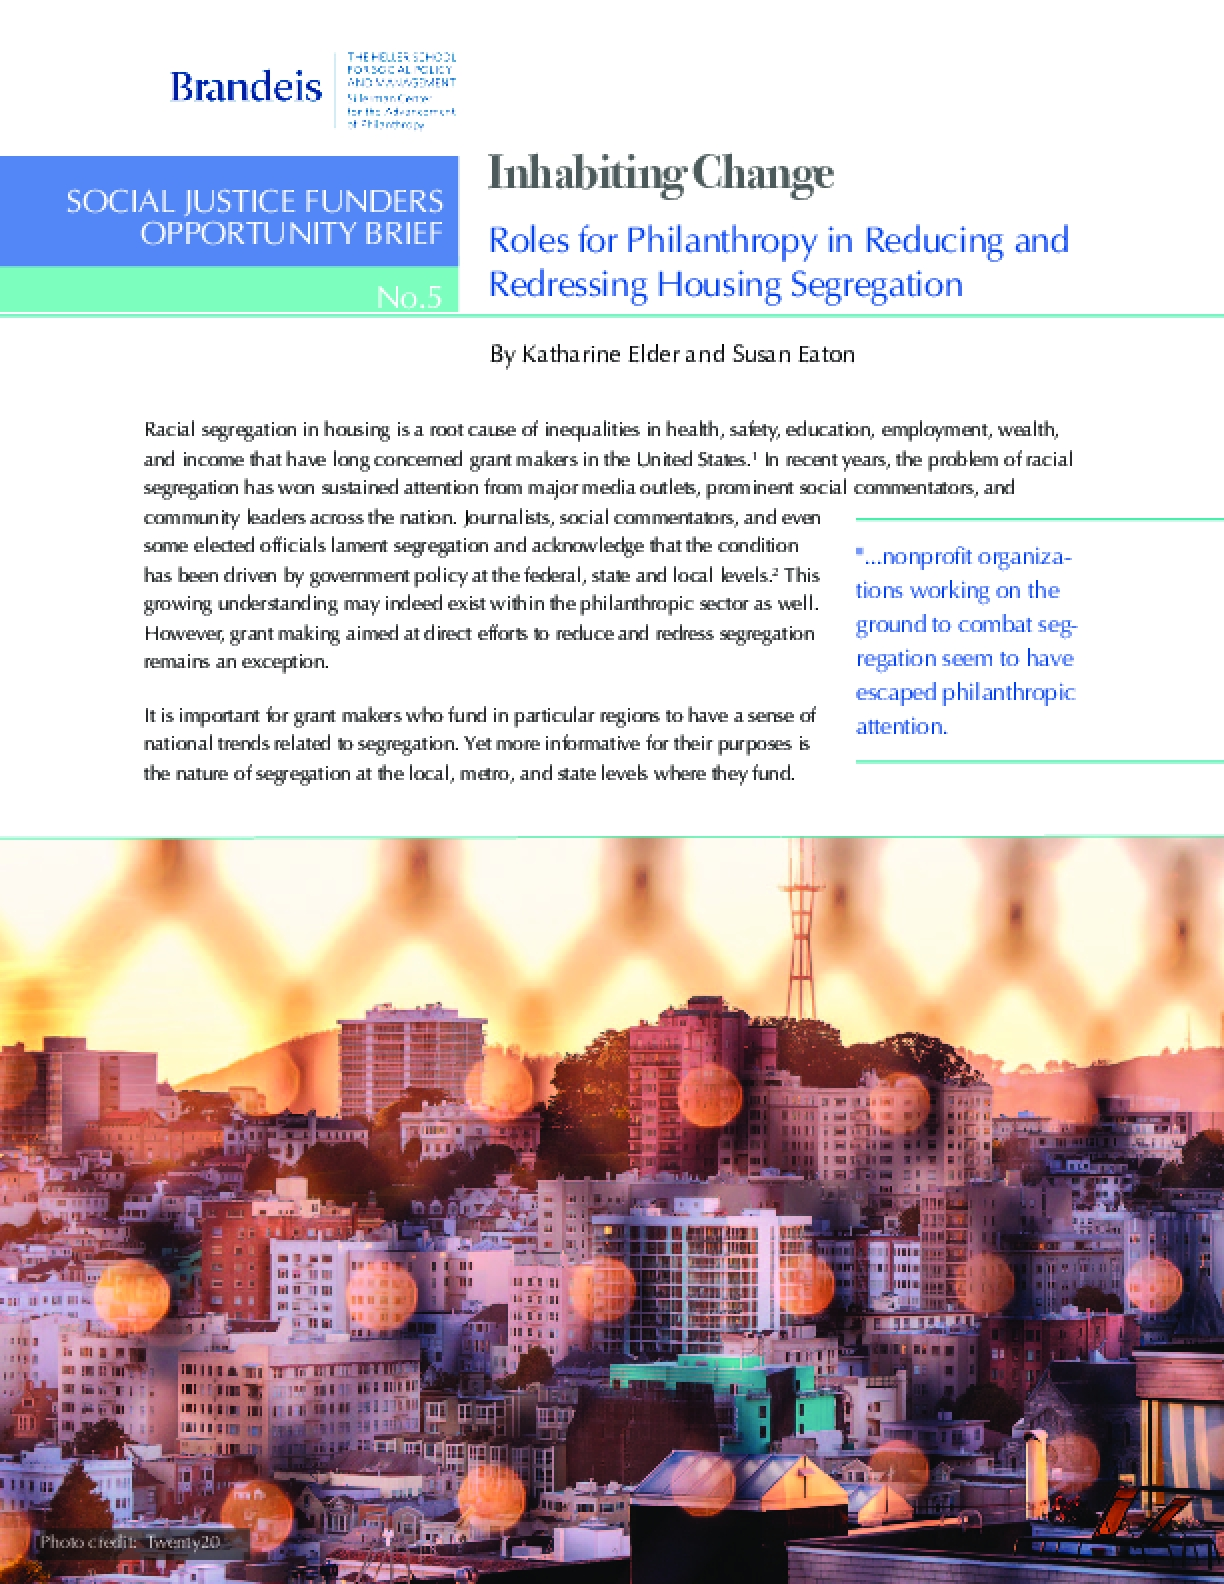 Inhabiting Change: Roles for Philanthropy and Reducing and Redressing Housing Segregation